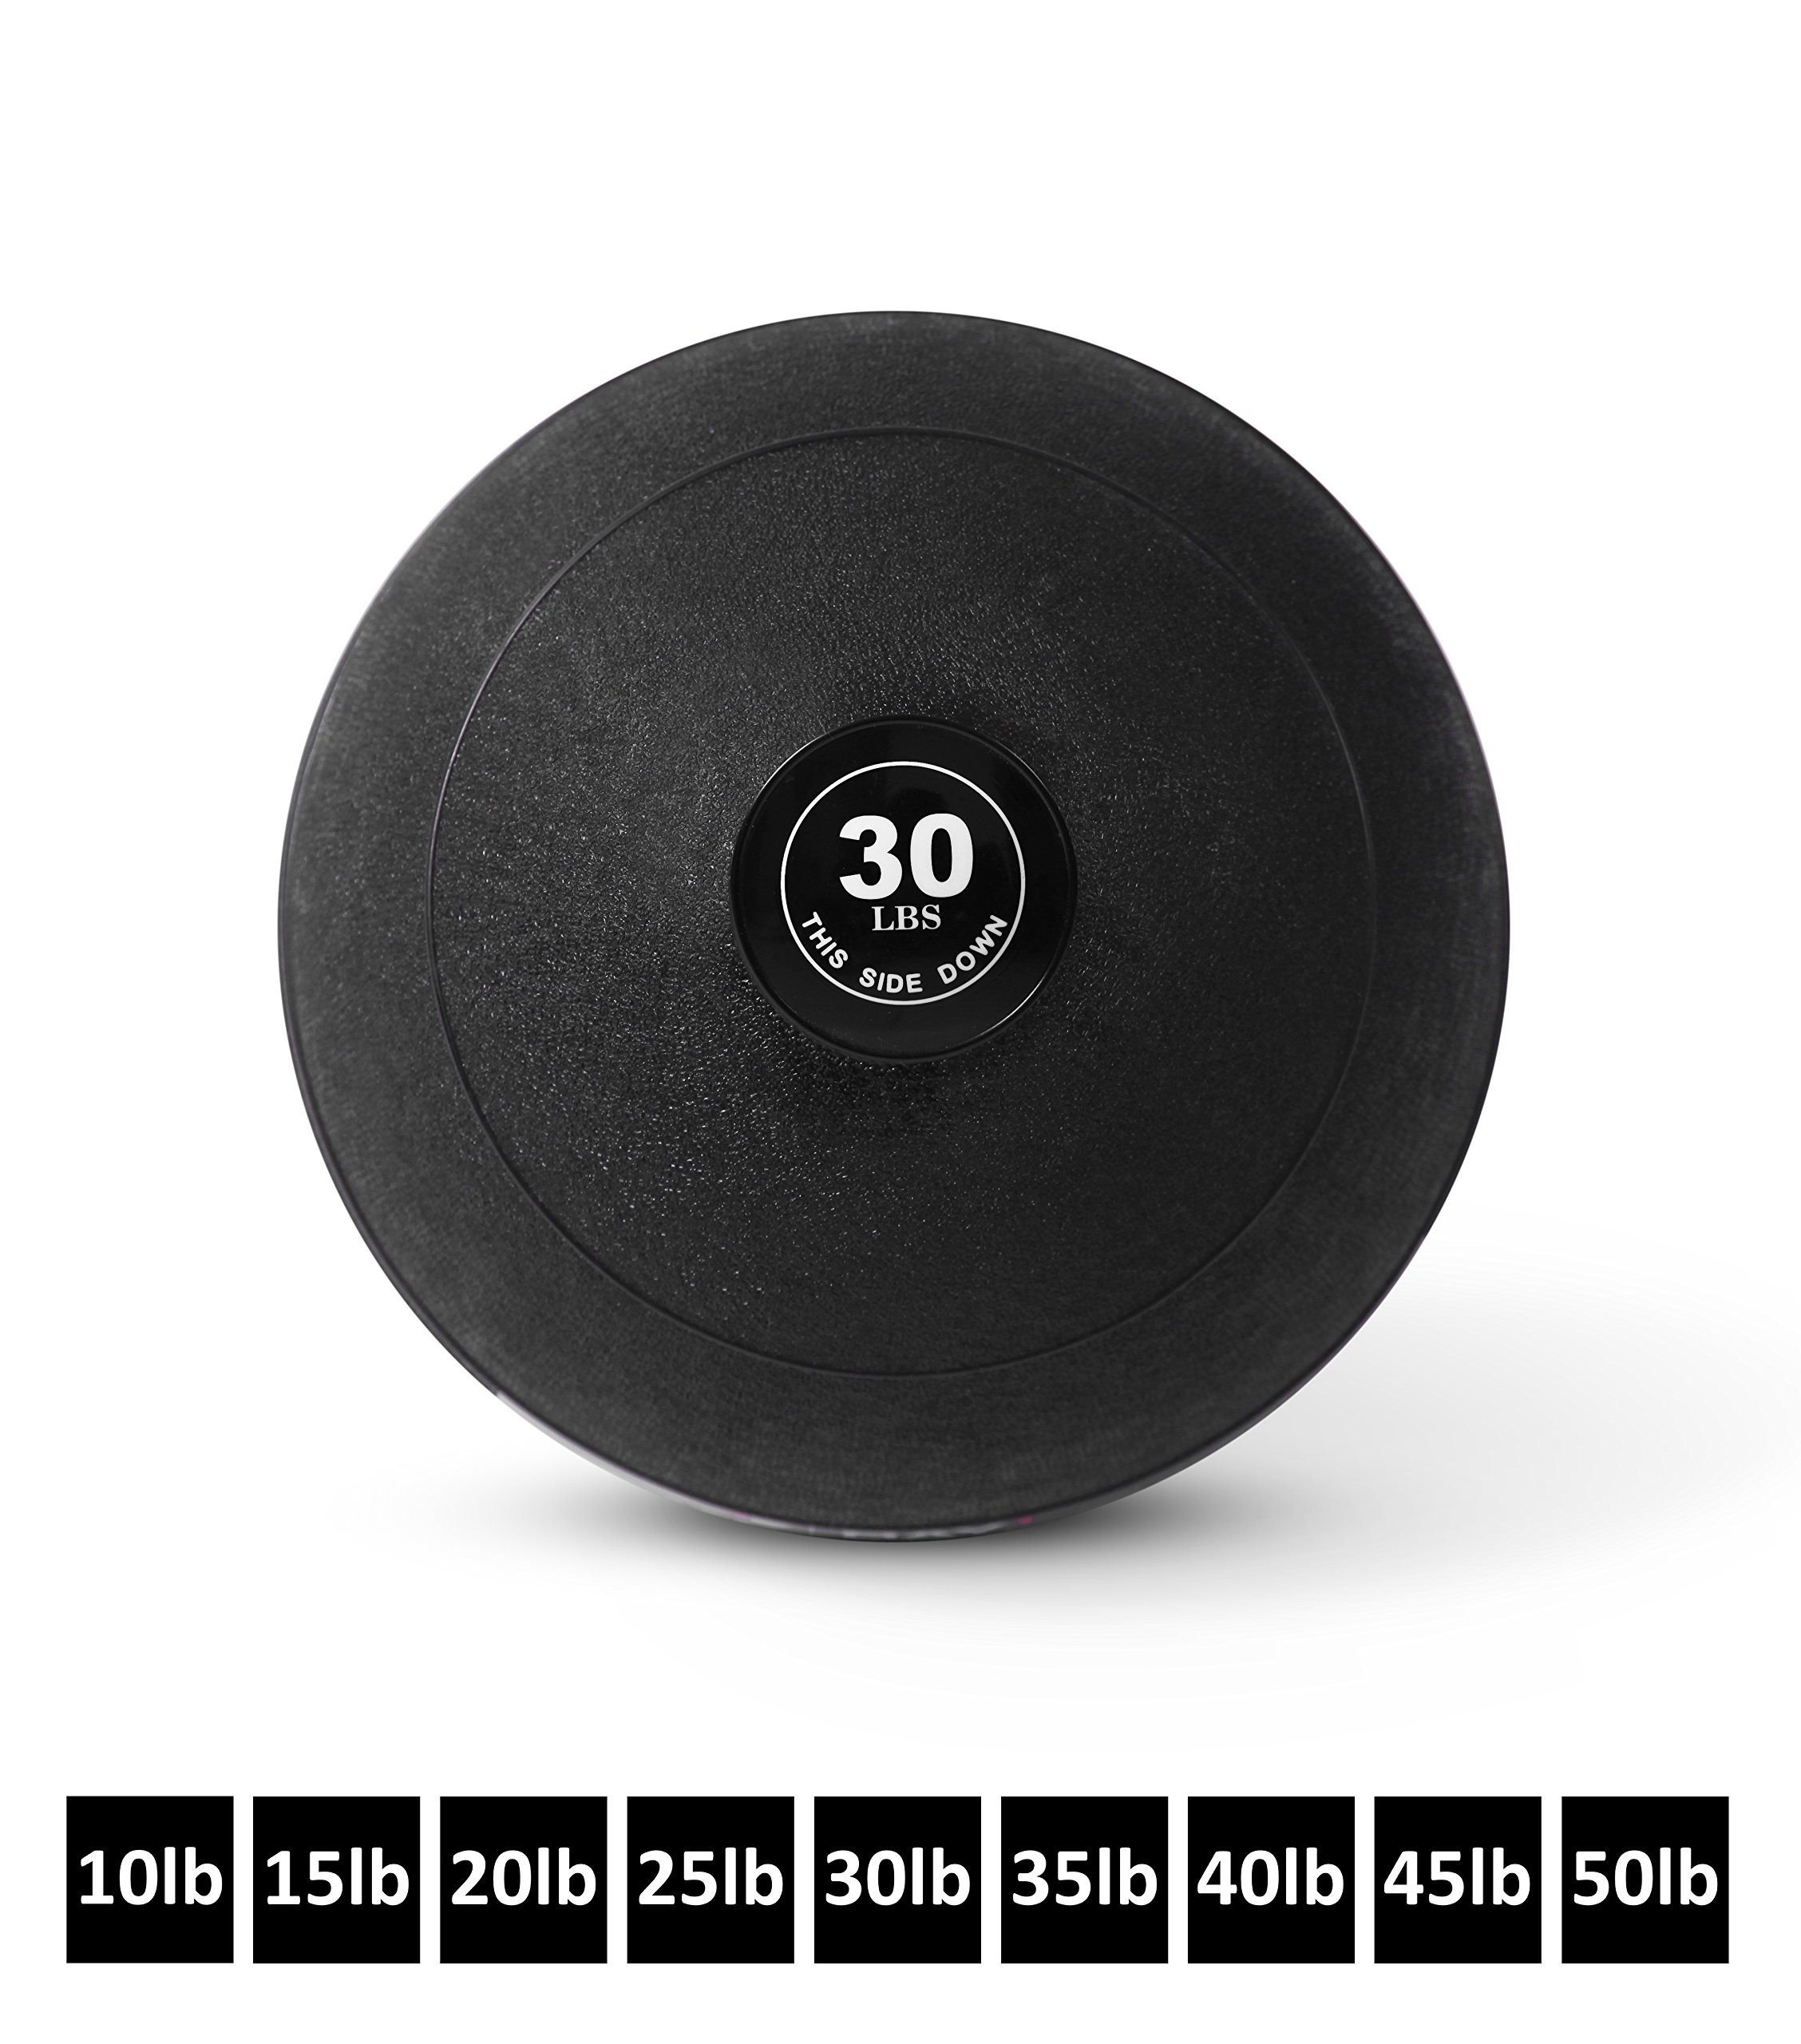 Weighted Slam Ball by Day 1 Fitness - 30 lbs - No Bounce Medicine Ball - Gym Equipment Accessories for High Intensity Exercise, Functional Strength Training, Cardio, CrossFit